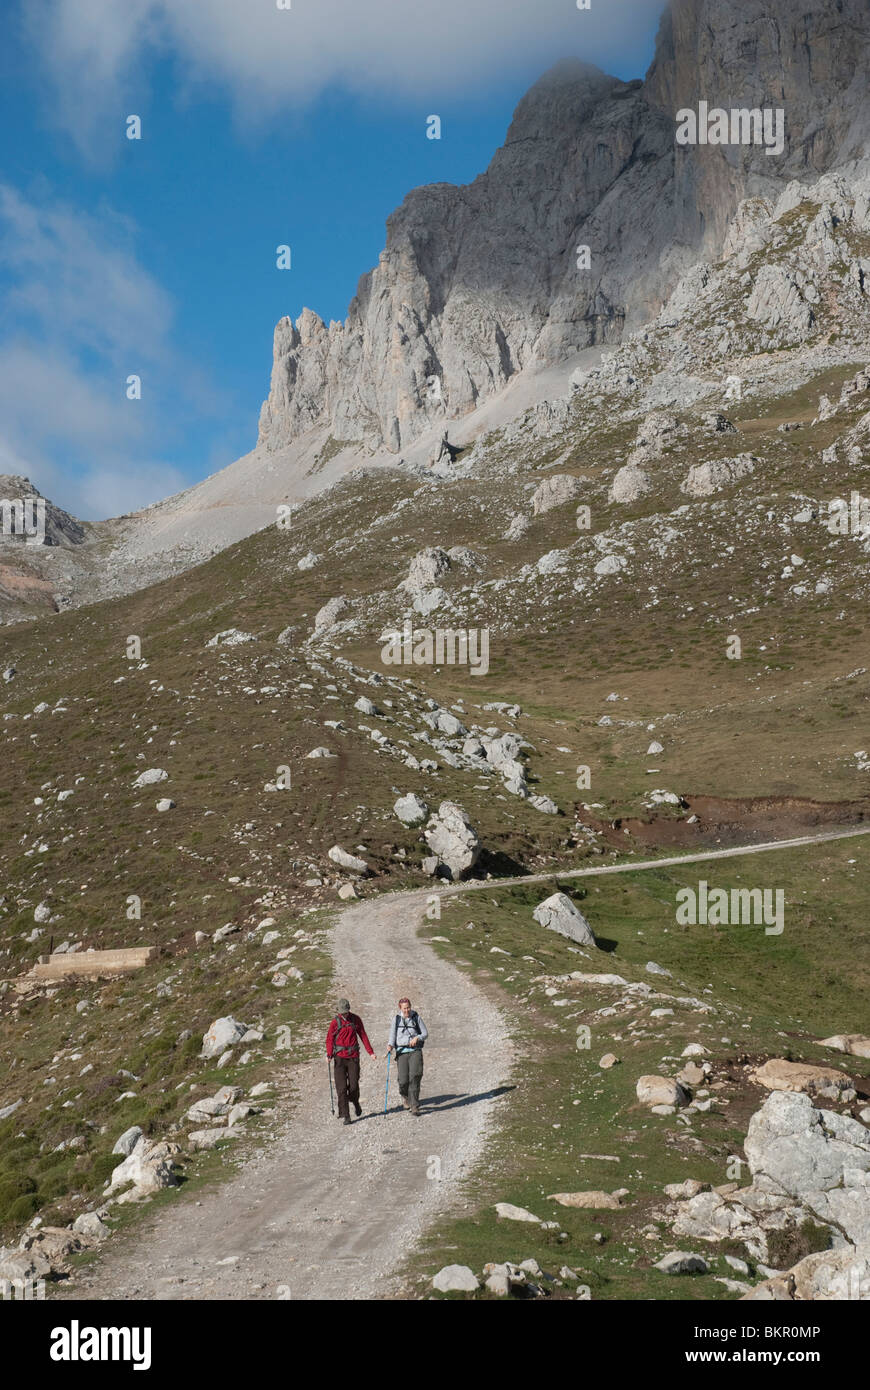 Mountain hikers in the Aliva valley, Central Massif, Picos de Europa, Northern Spain - Stock Image